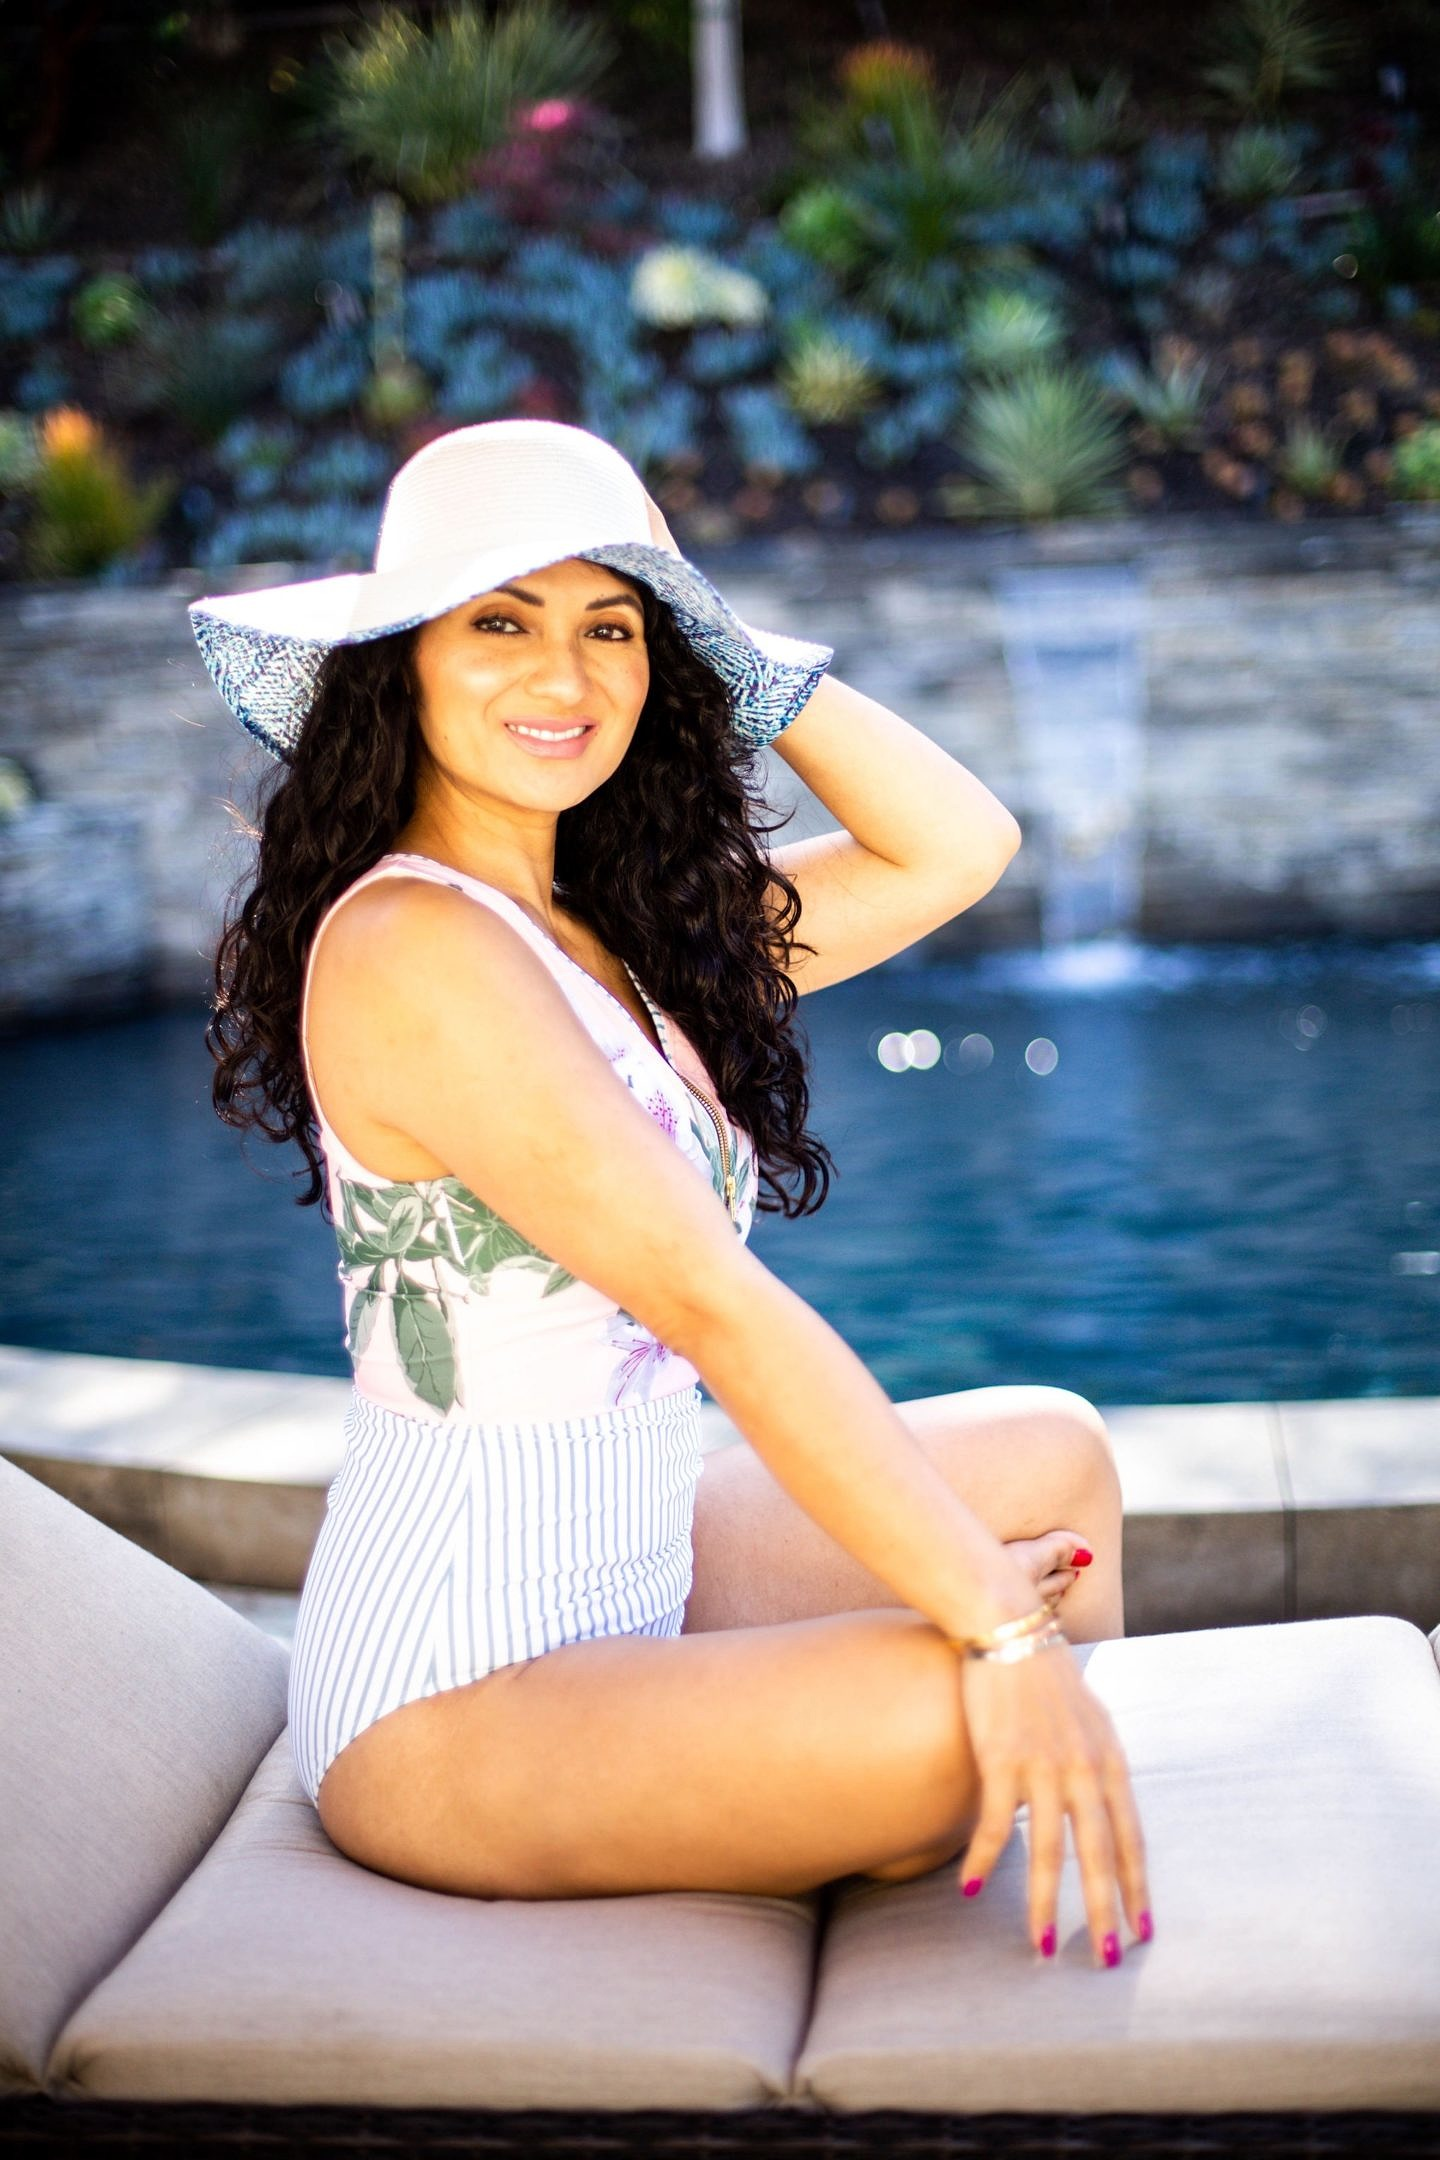 Looking for the perfect one piece swimsuit? Orange County Blogger Debbie Savage is sharing why a Albion Fit One-Piece Swimsuit is the the best.  Click HERE to see why you need one ASAP!